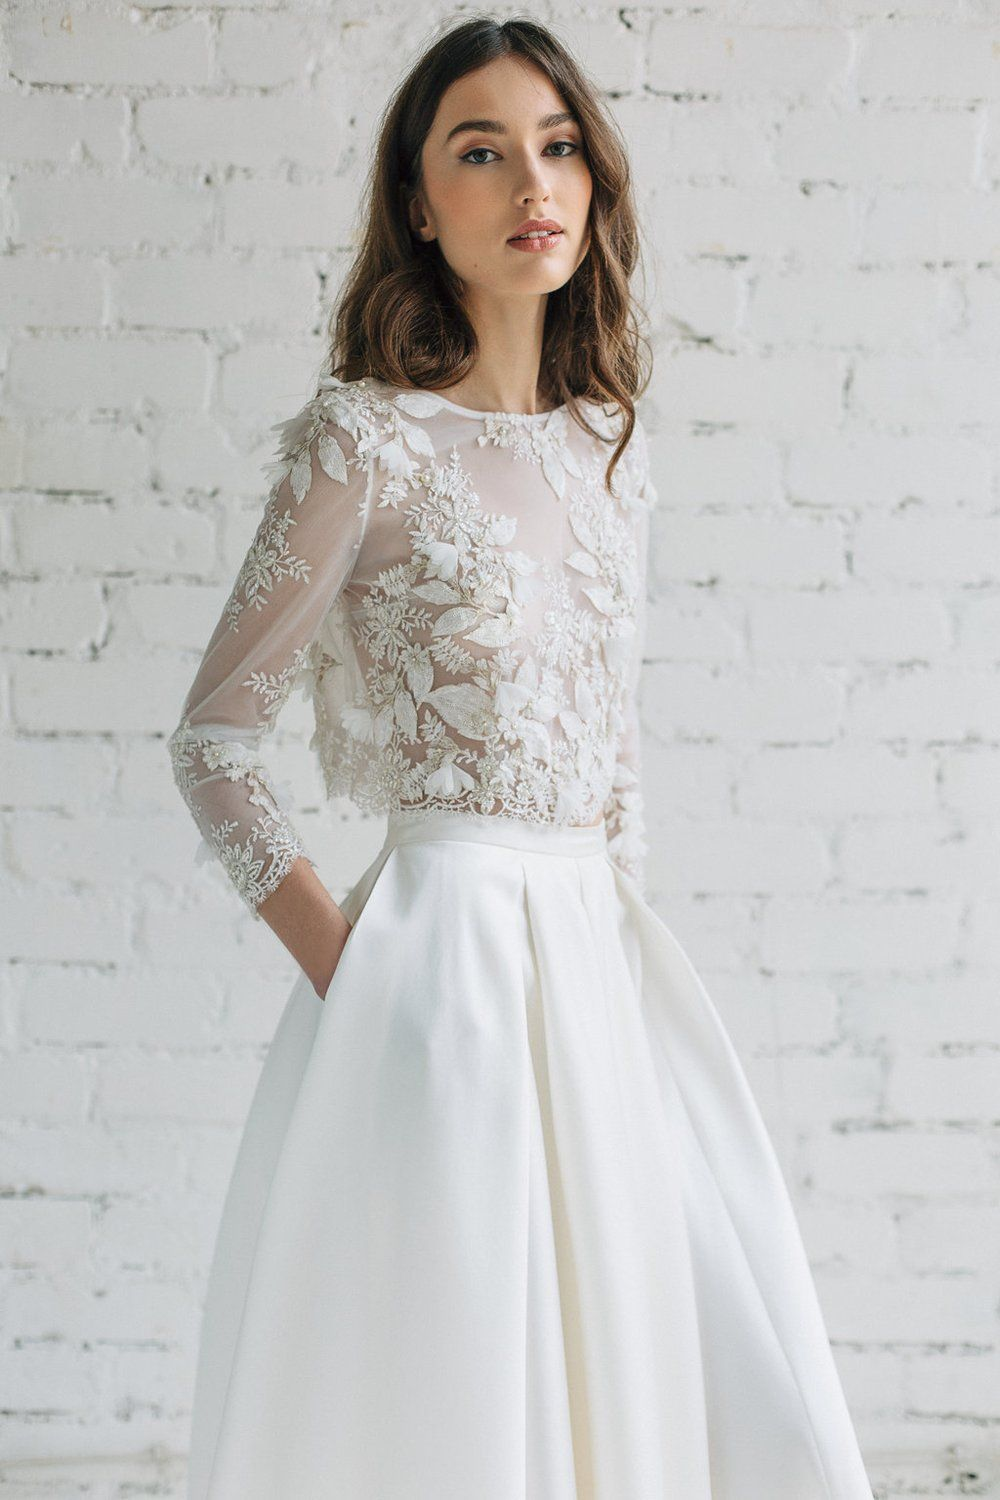 3d bridal lace top - camila 2017 s/s   Wedding, Wedding dress and ...